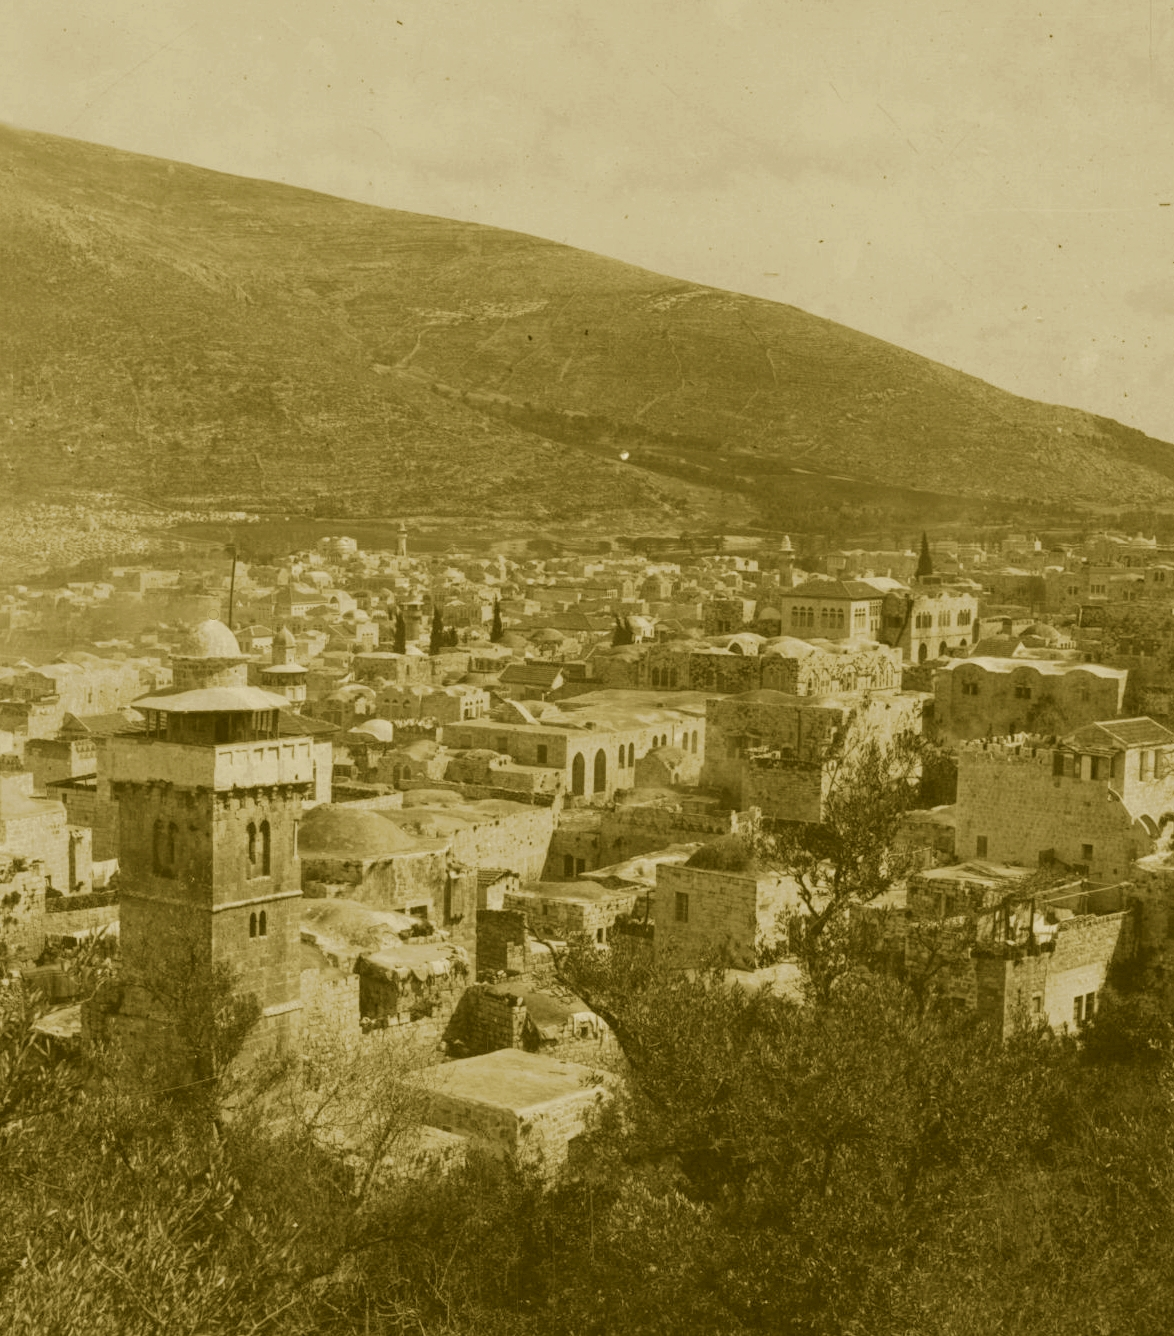 Nablus - نابلس : NABLUS - Late 19th, early 20th c. 83 - Nablus nestling in it's valley (High Res.)